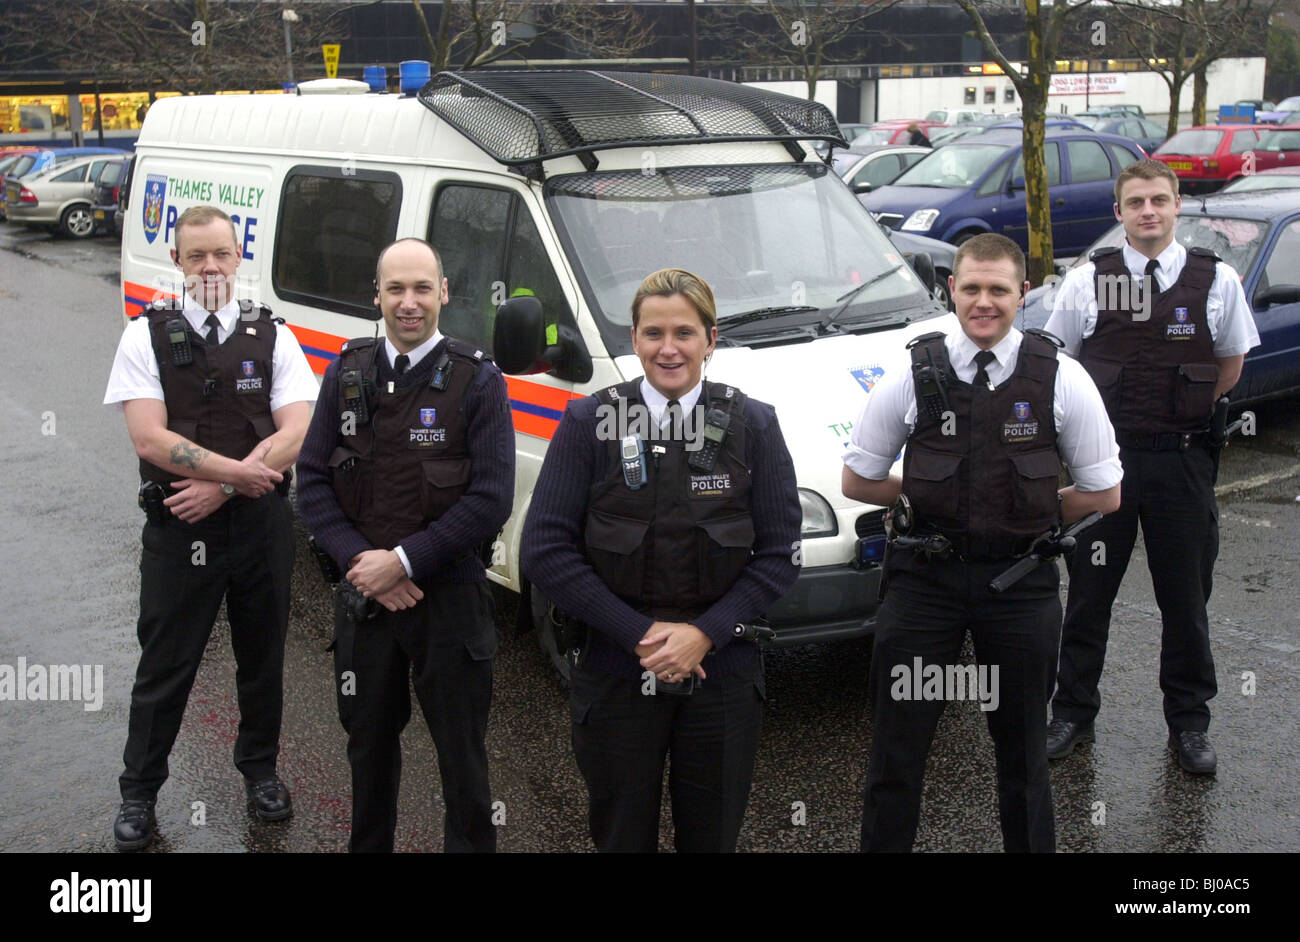 http://c8.alamy.com/comp/BJ0AC5/five-thames-valley-police-officers-in-front-of-a-police-van-uk-BJ0AC5.jpg